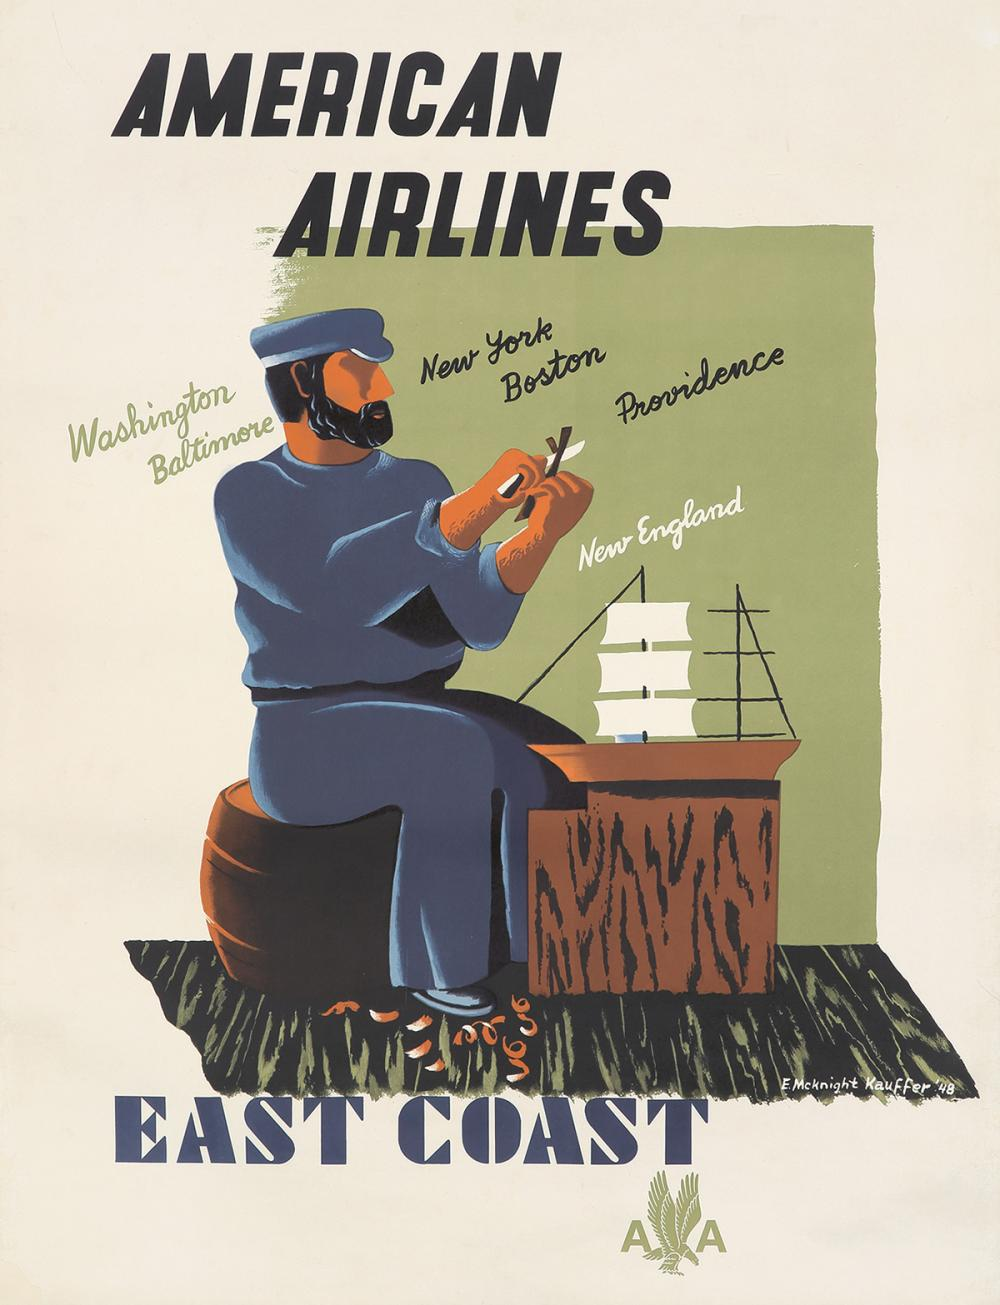 American Airlines / East Coast. 1948.